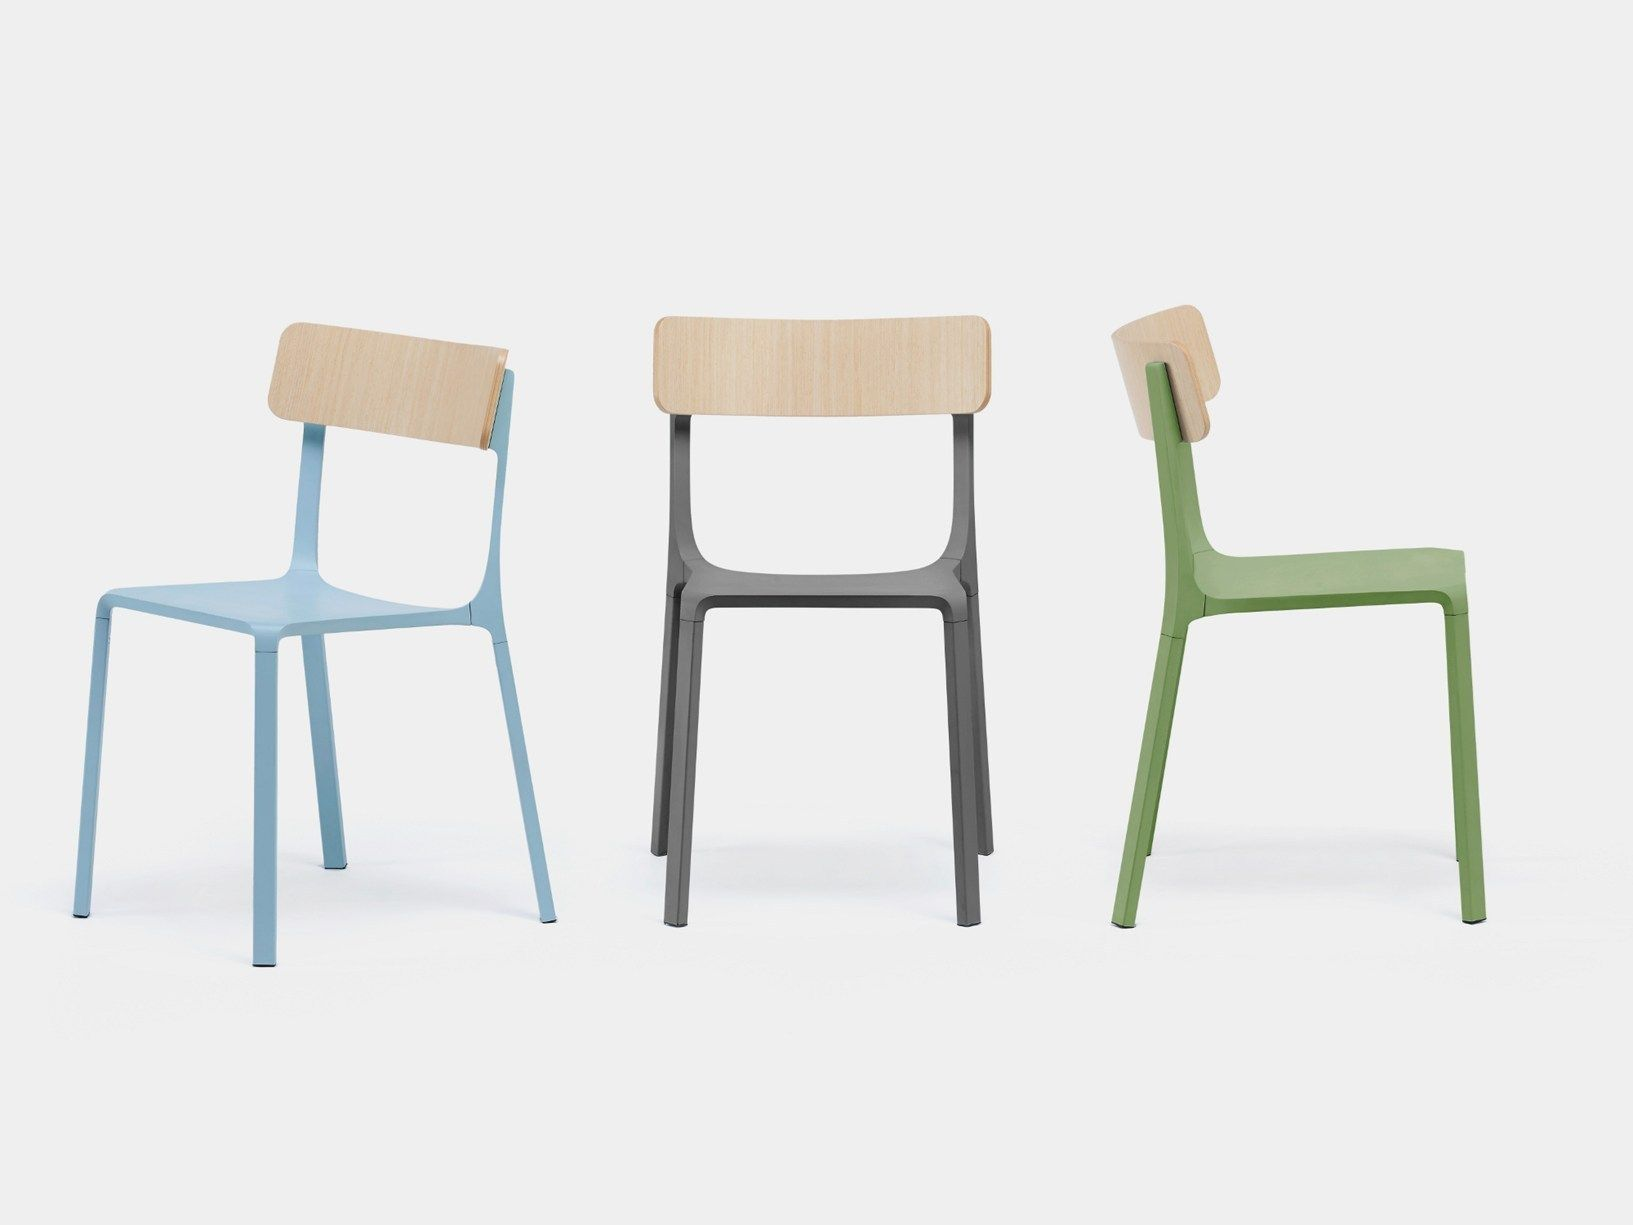 Genial Latest Seating Collections On Preview At Salone Del Mobile